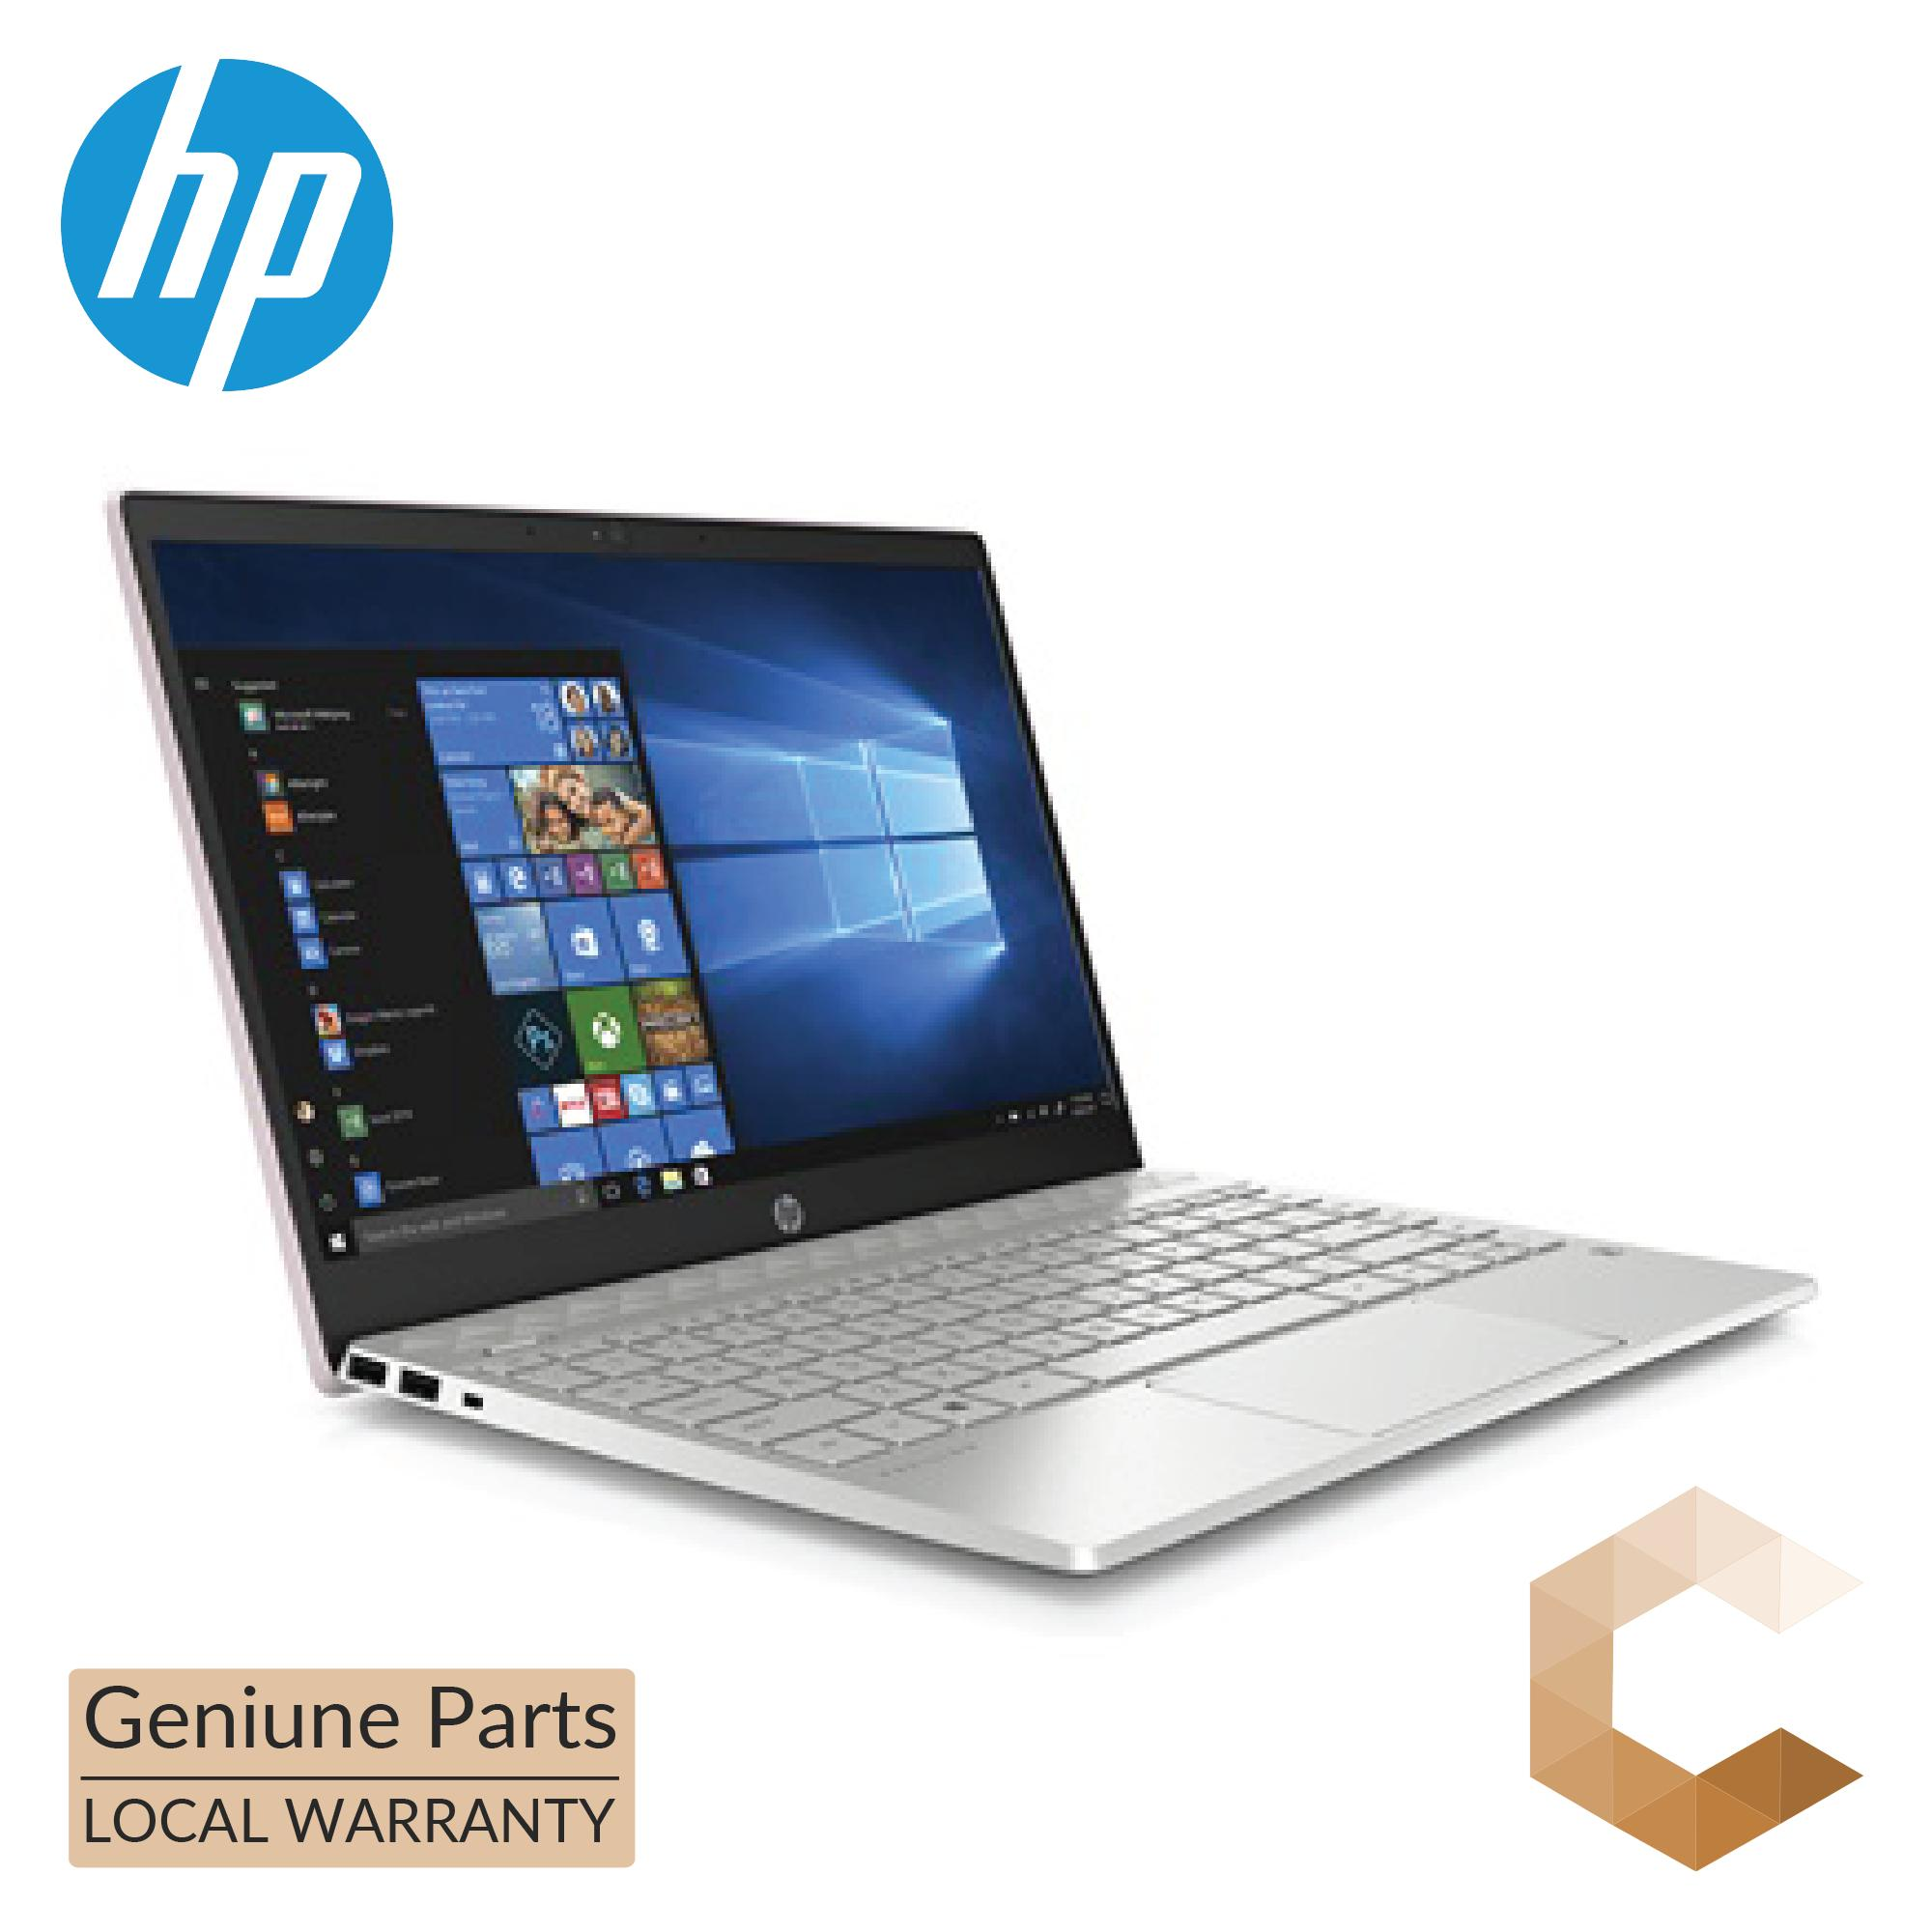 HP Pavilion Laptop 13-an0047TU (5TH53PA)